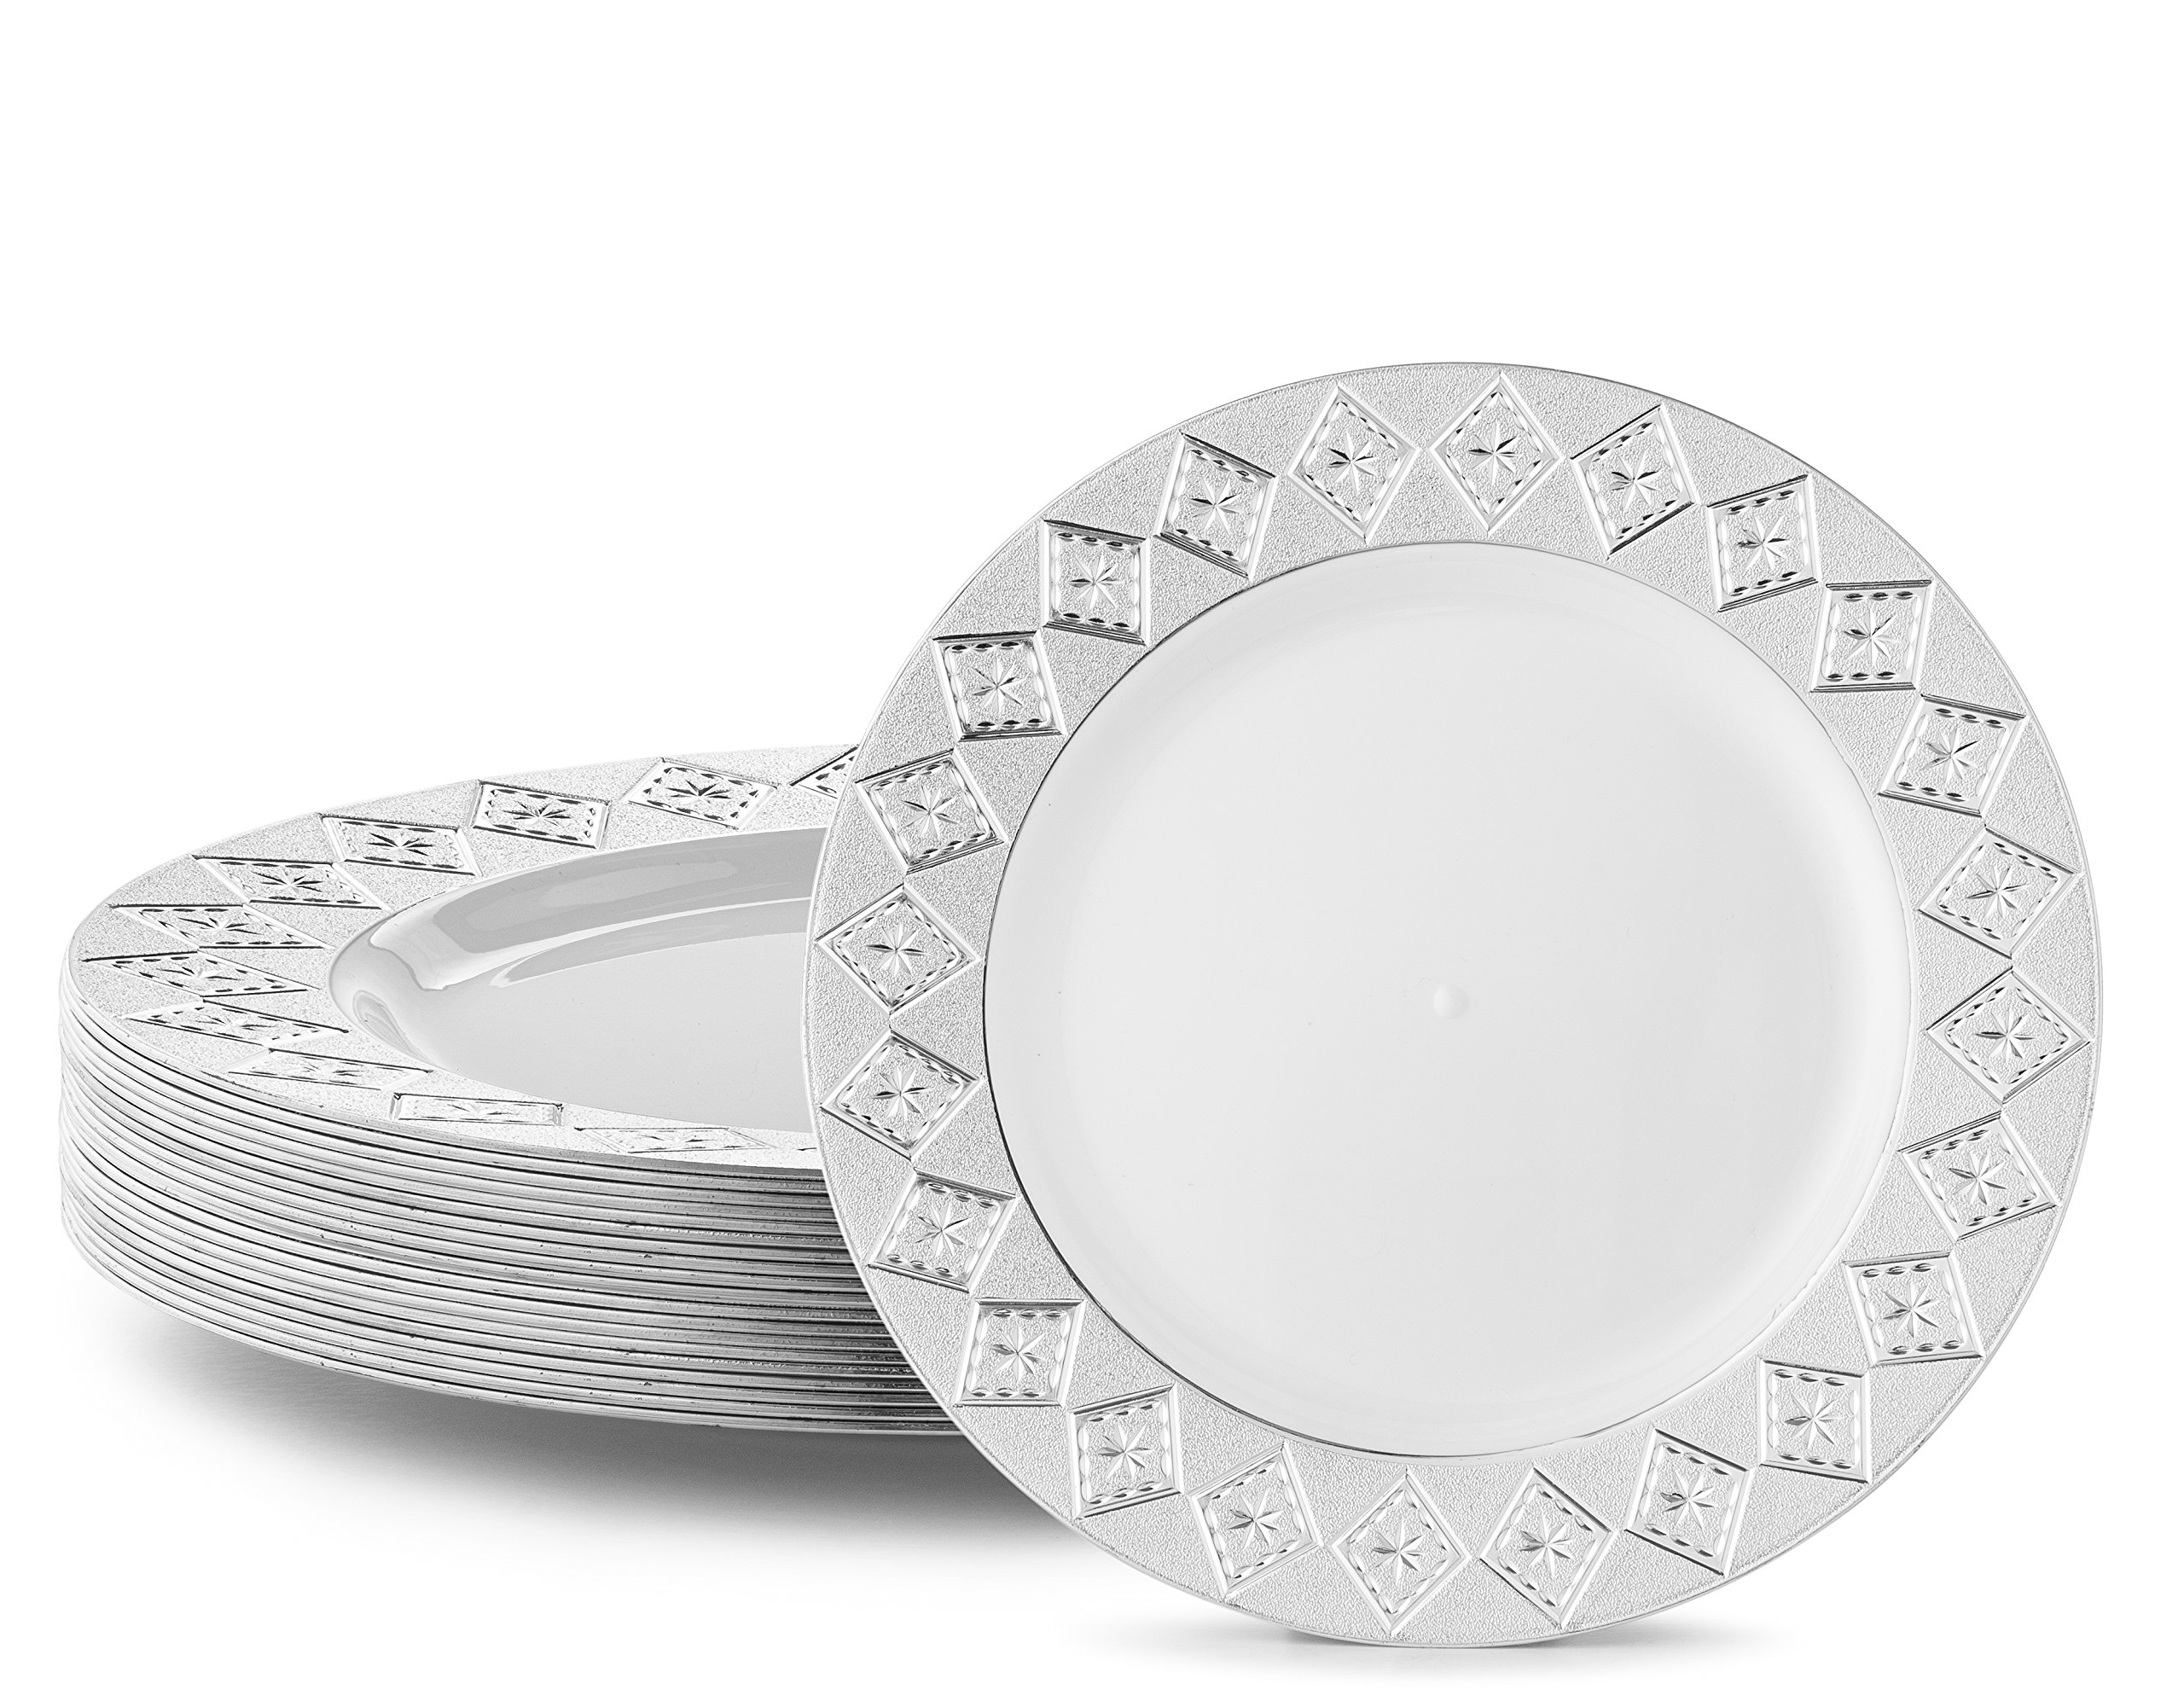 Cheap Hard Plastic Plates, find Hard Plastic Plates deals on line at ...